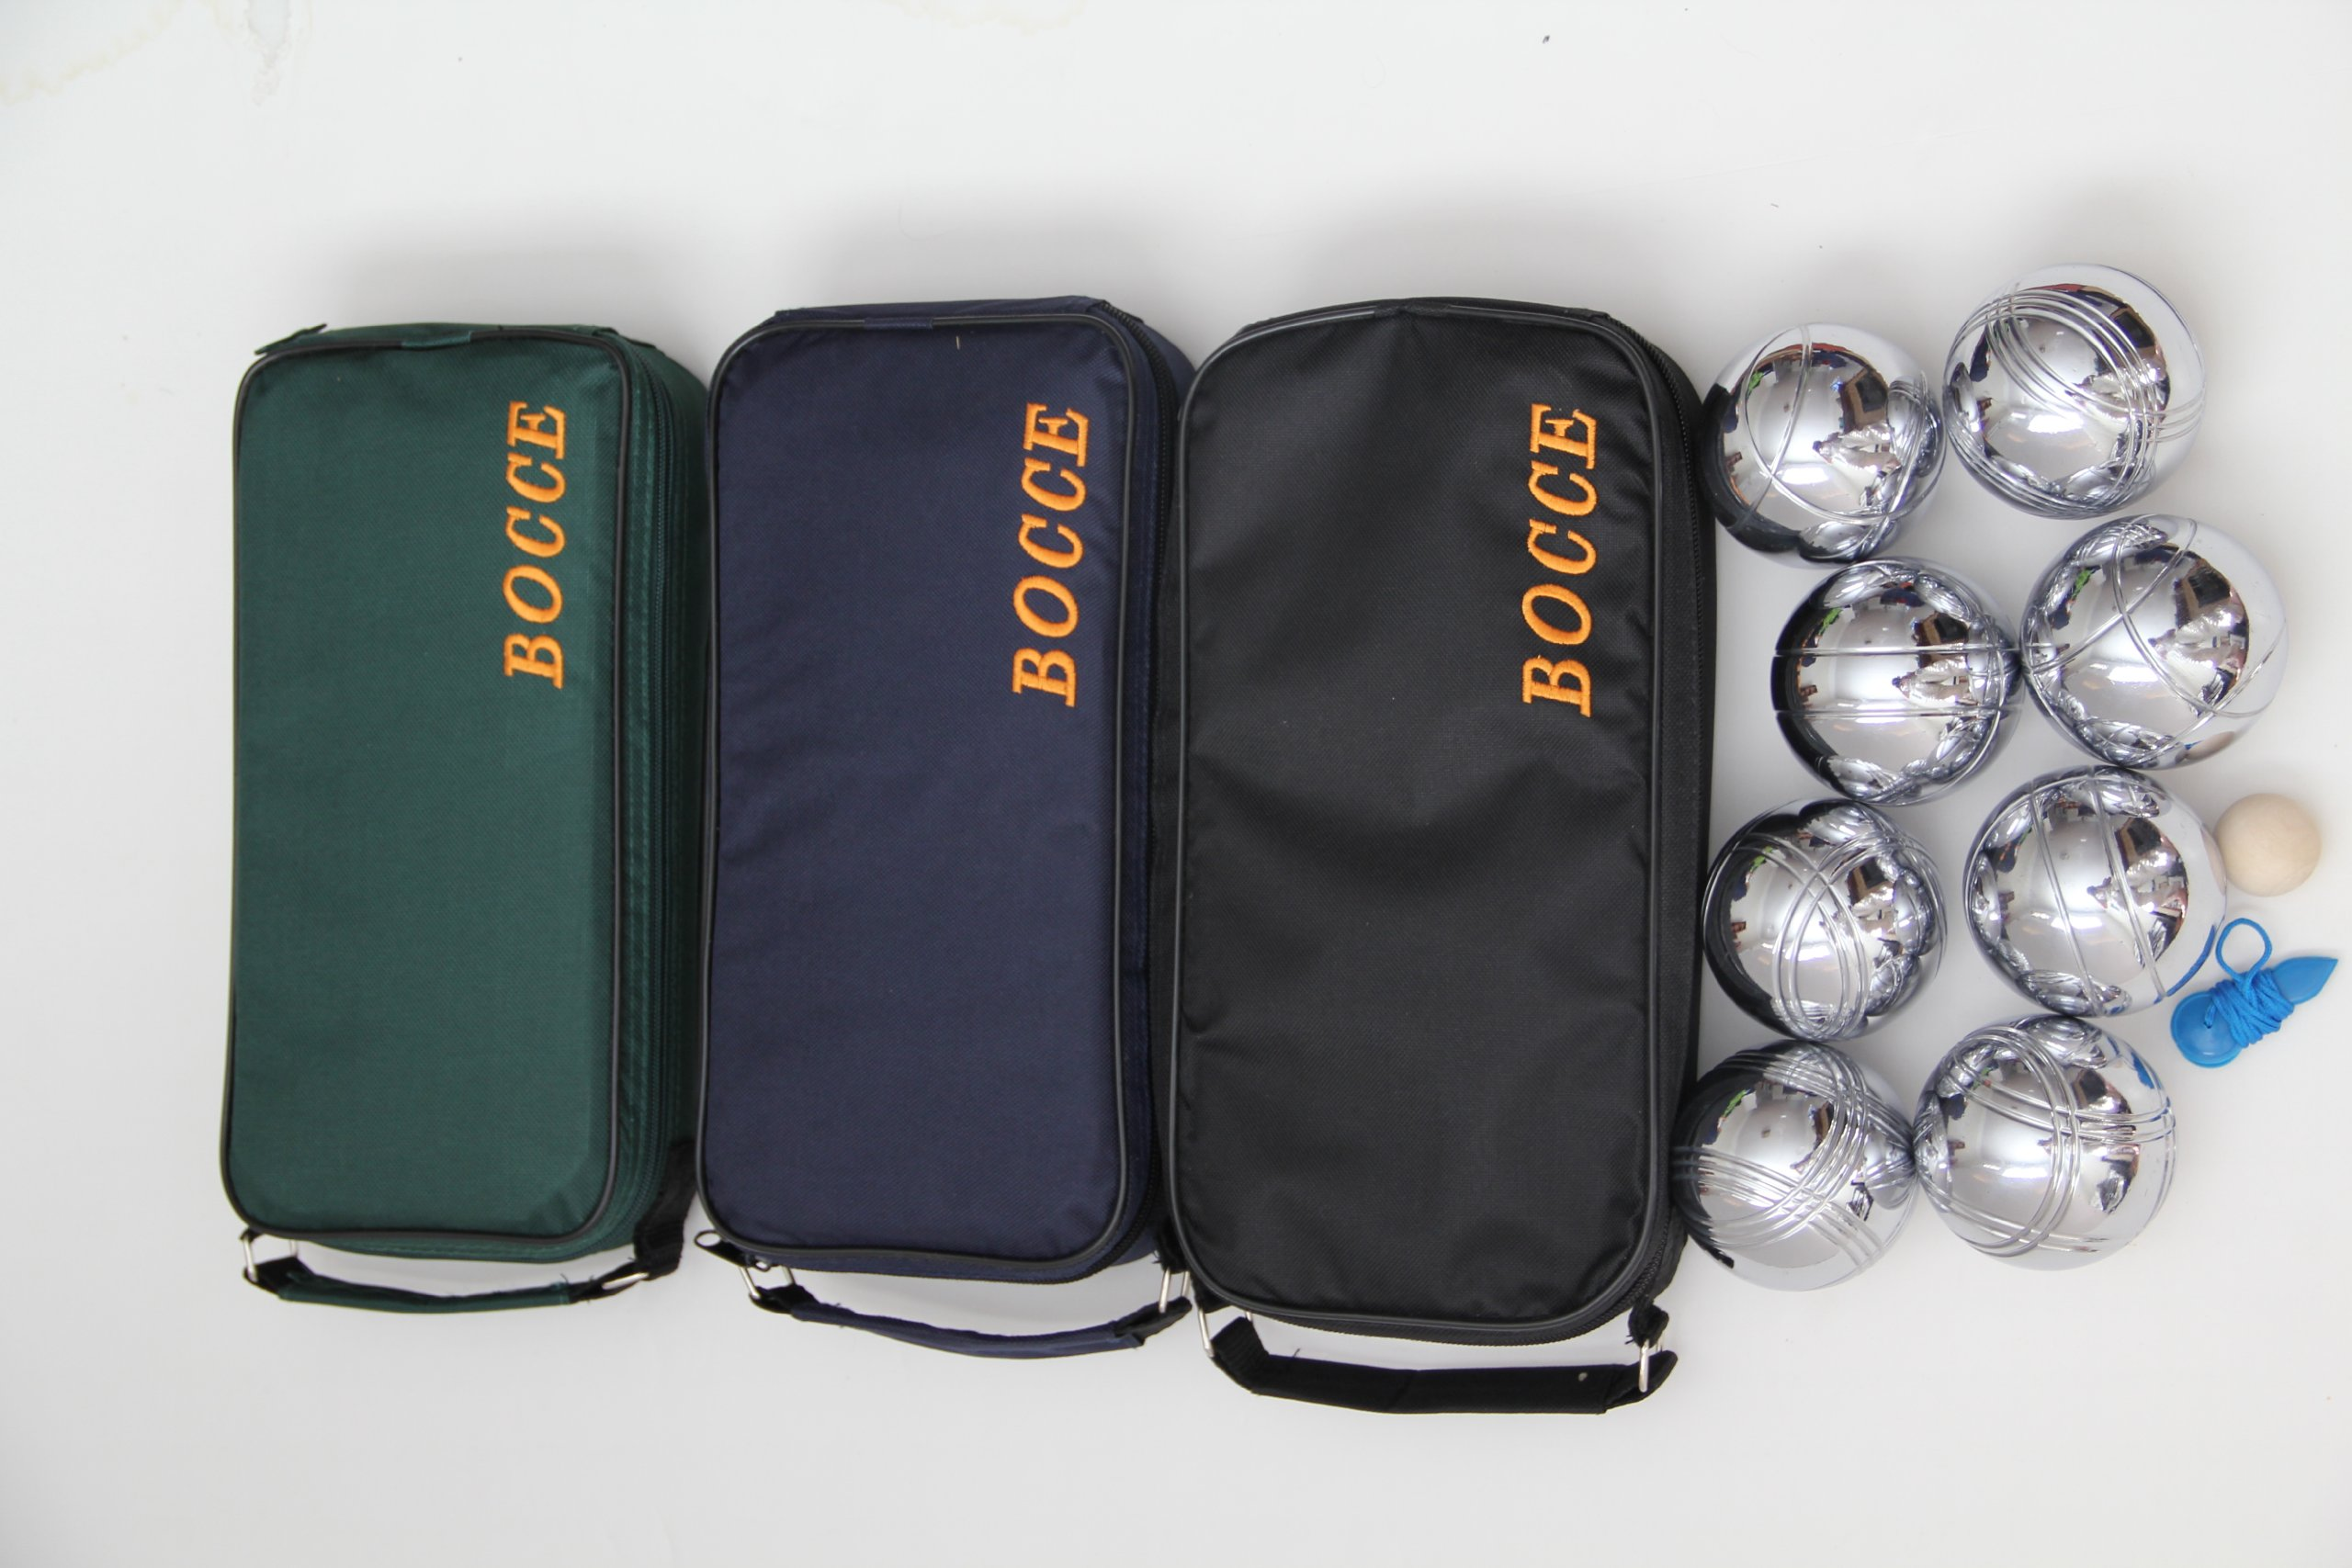 8 Ball 73mm Metal Bocce/Petanque Set with green, blue and black bags - 3 pack by BuyBocceBalls